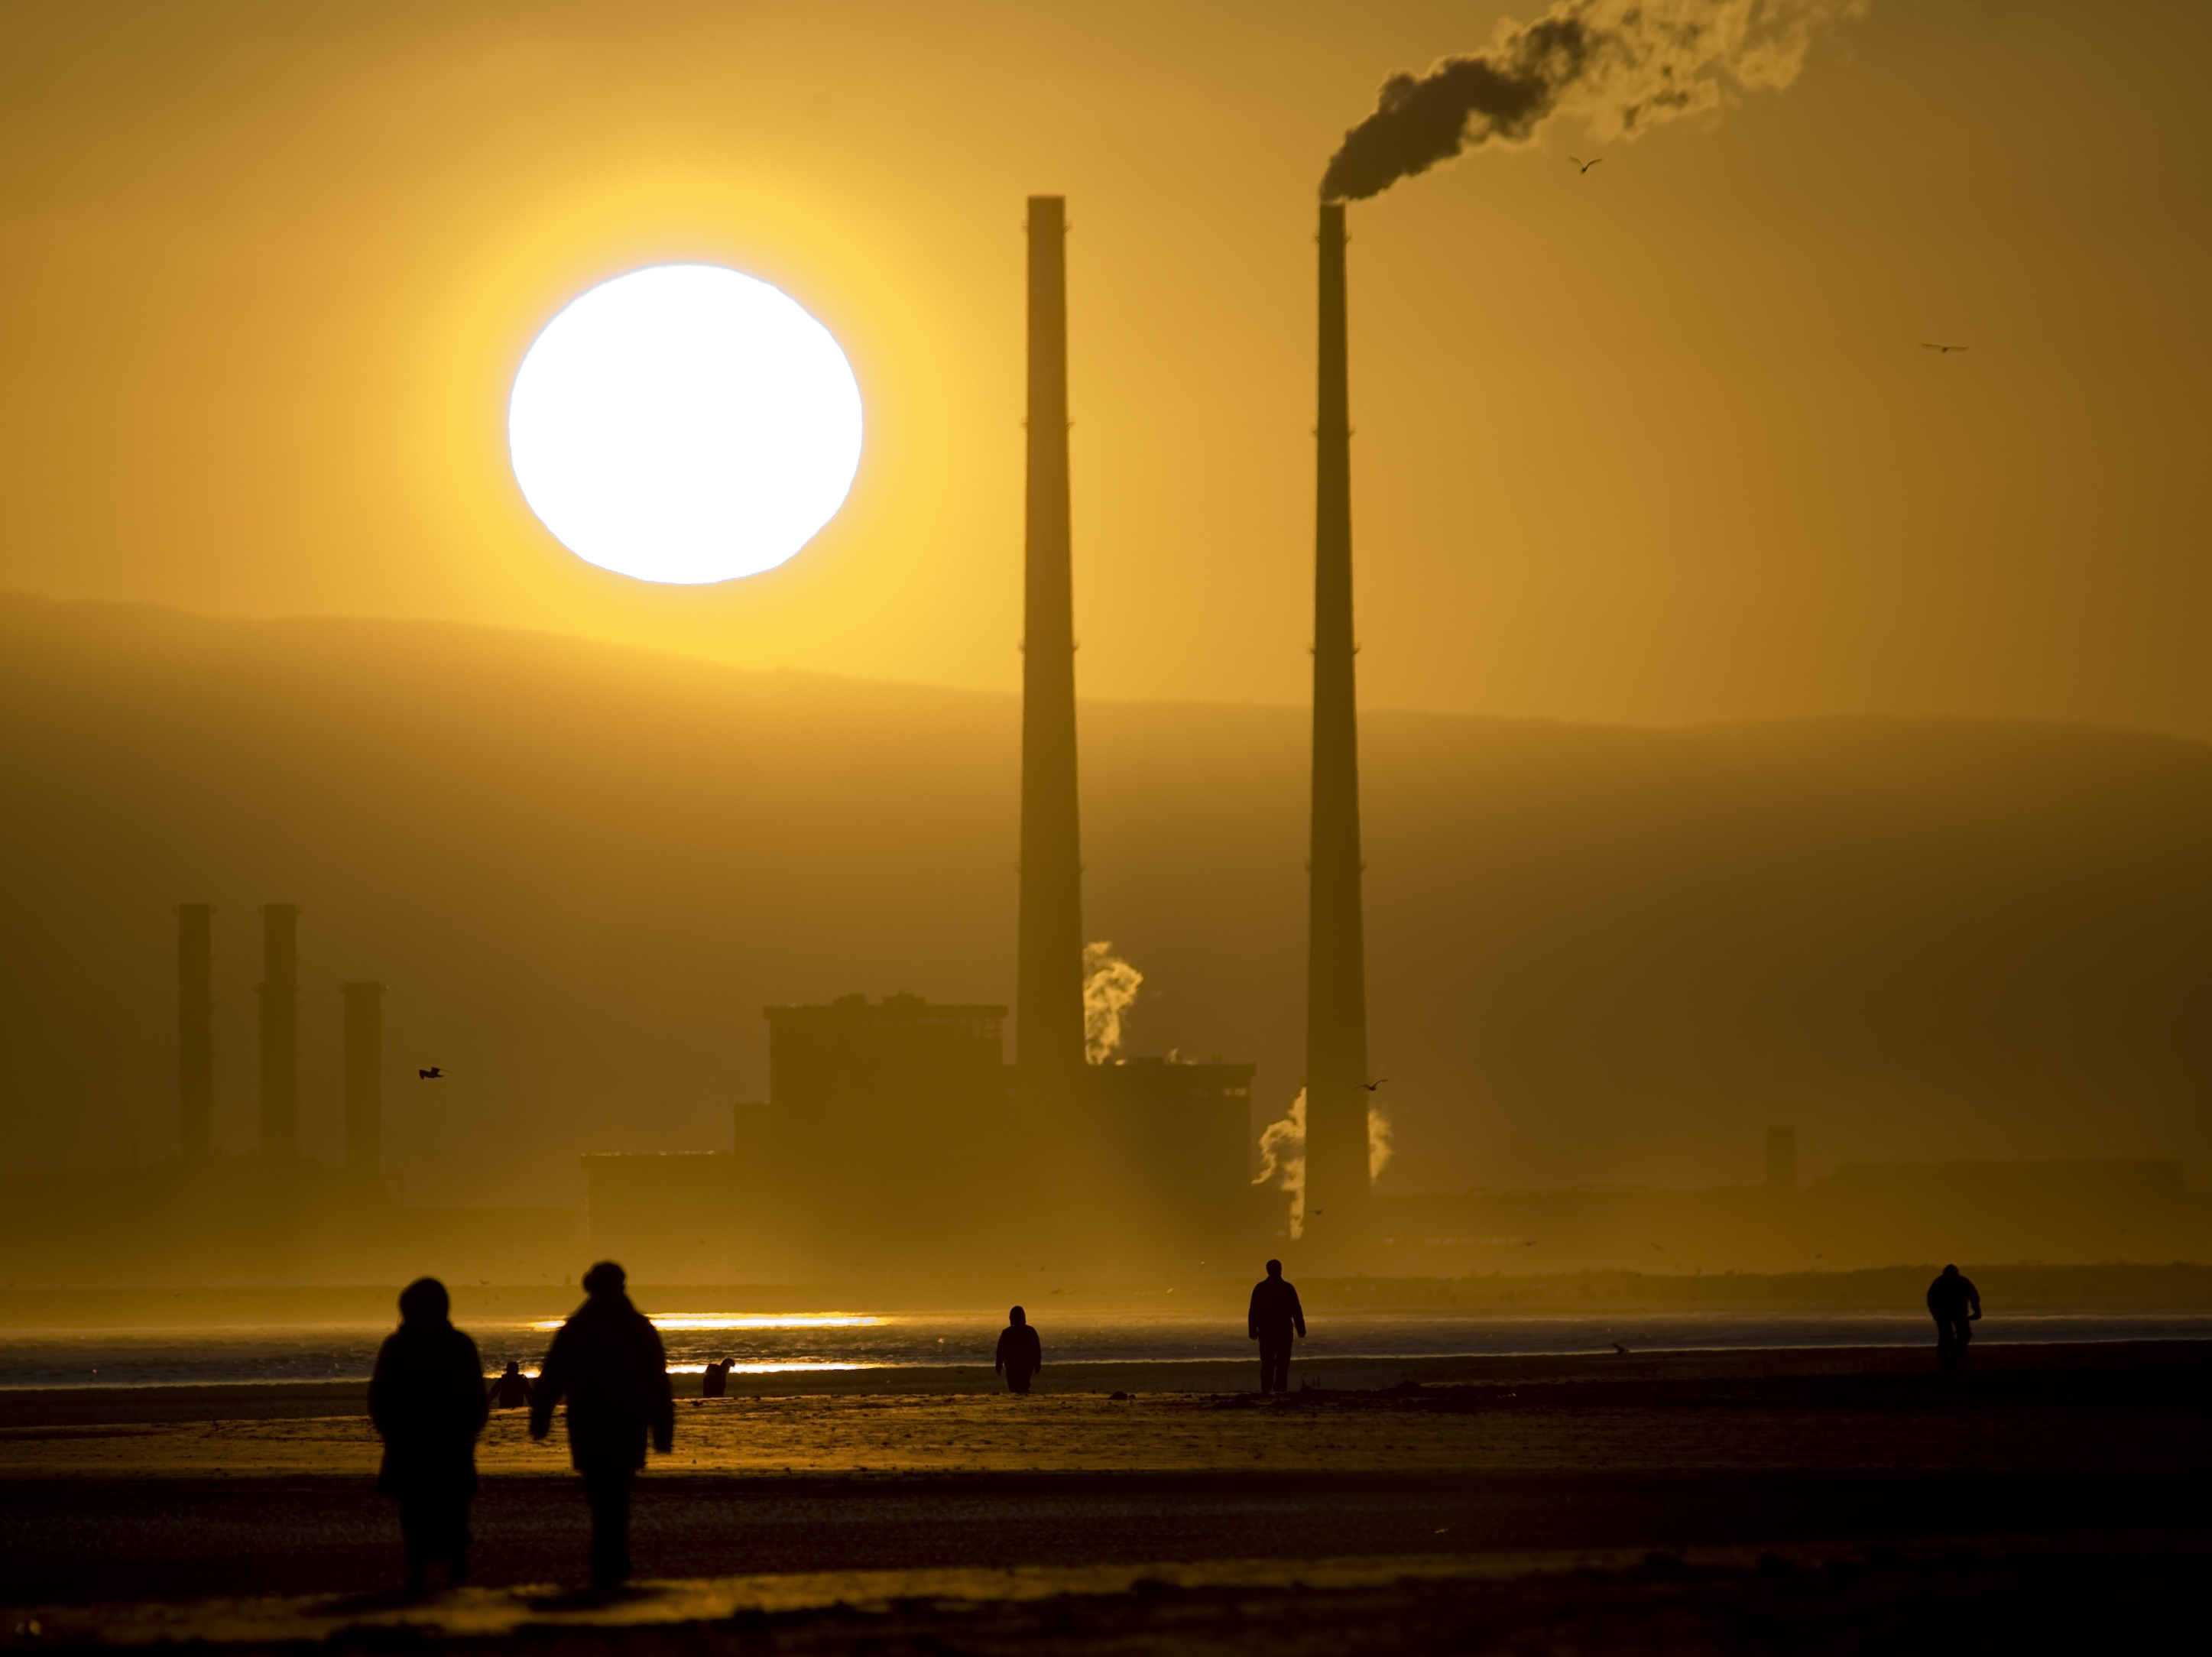 Ireland Expected To Become World's First Country To Divest From Fossil Fuels